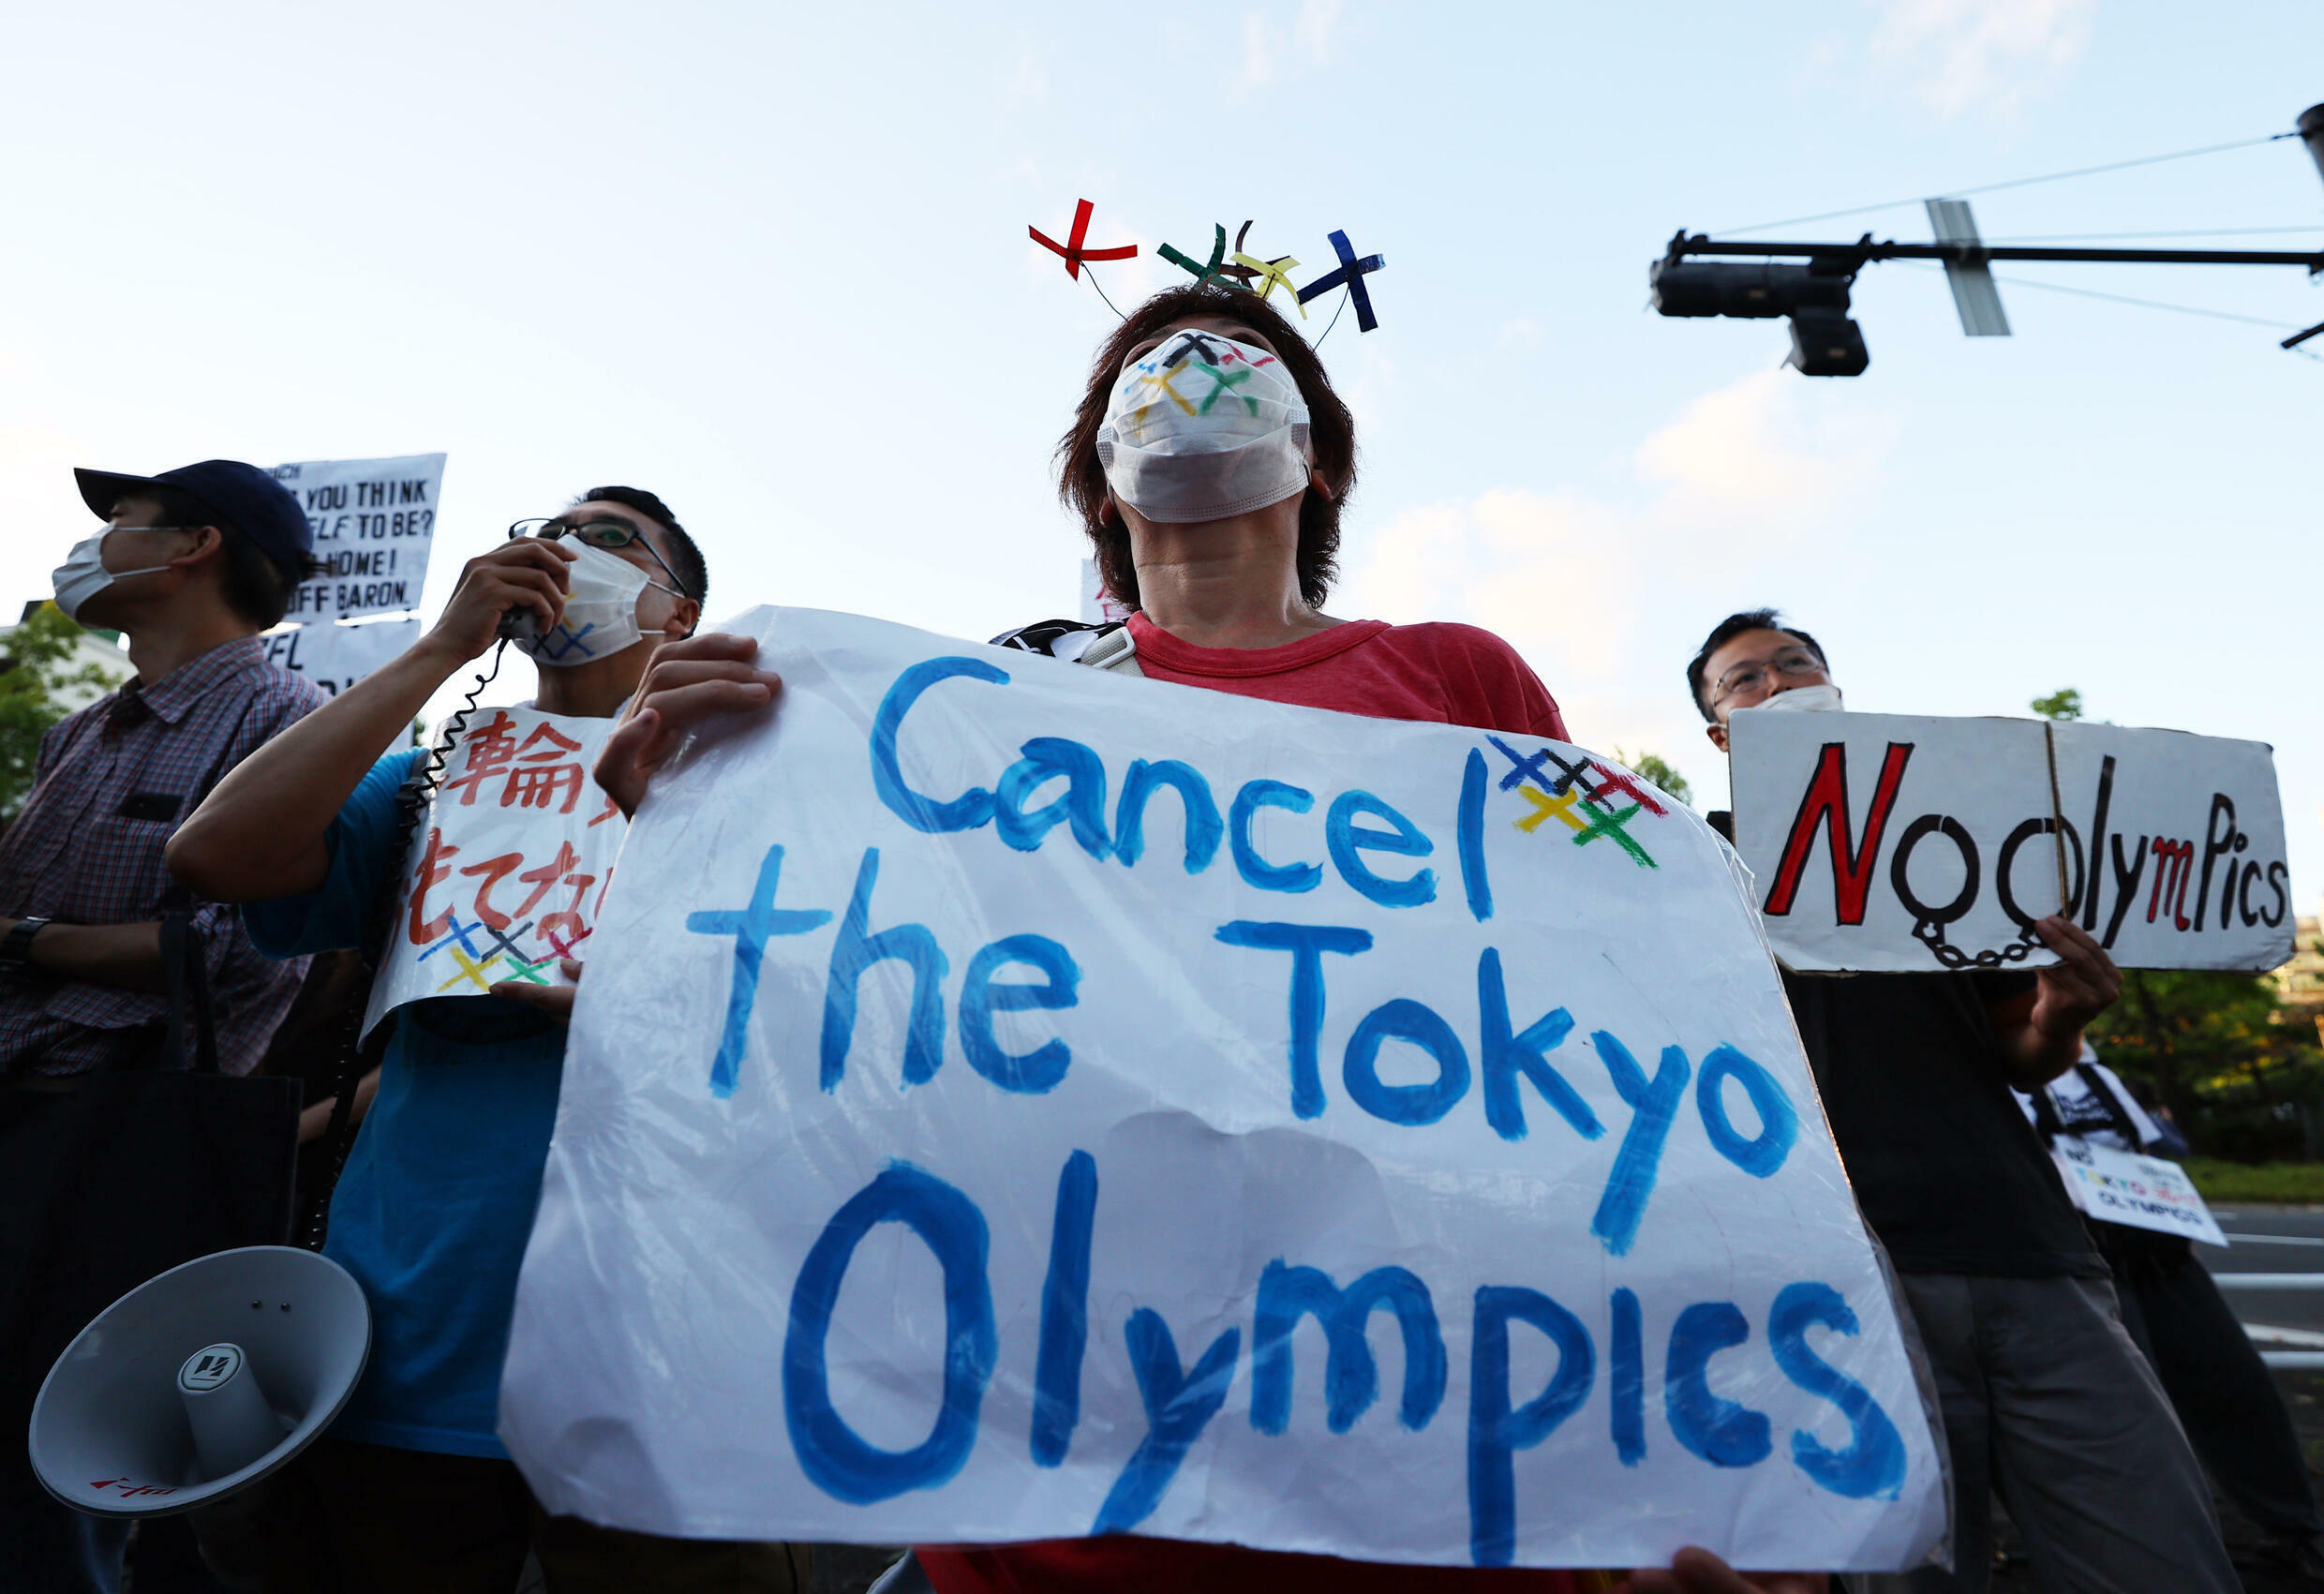 2021-07-18T093944Z_1502314598_UP1EH7I0QU60W_RTRMADP_3_OLYMPICS-2020-BACH-PROTEST